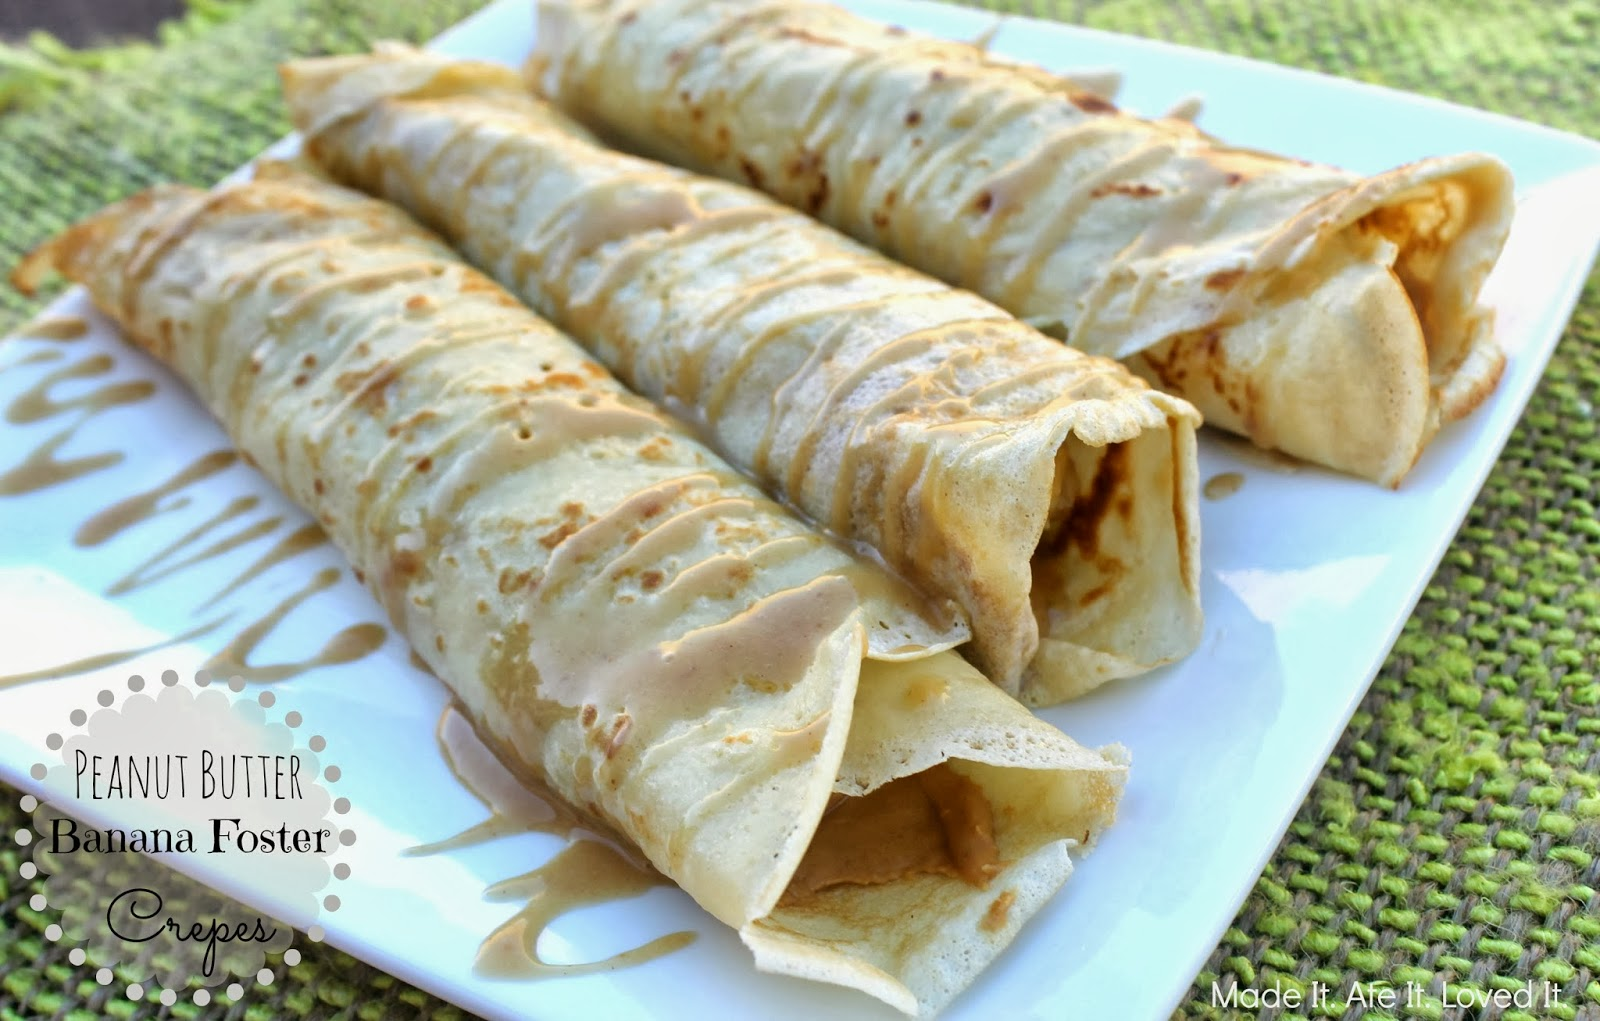 Made It. Ate It. Loved It.: Peanut Butter Banana Foster Crepes